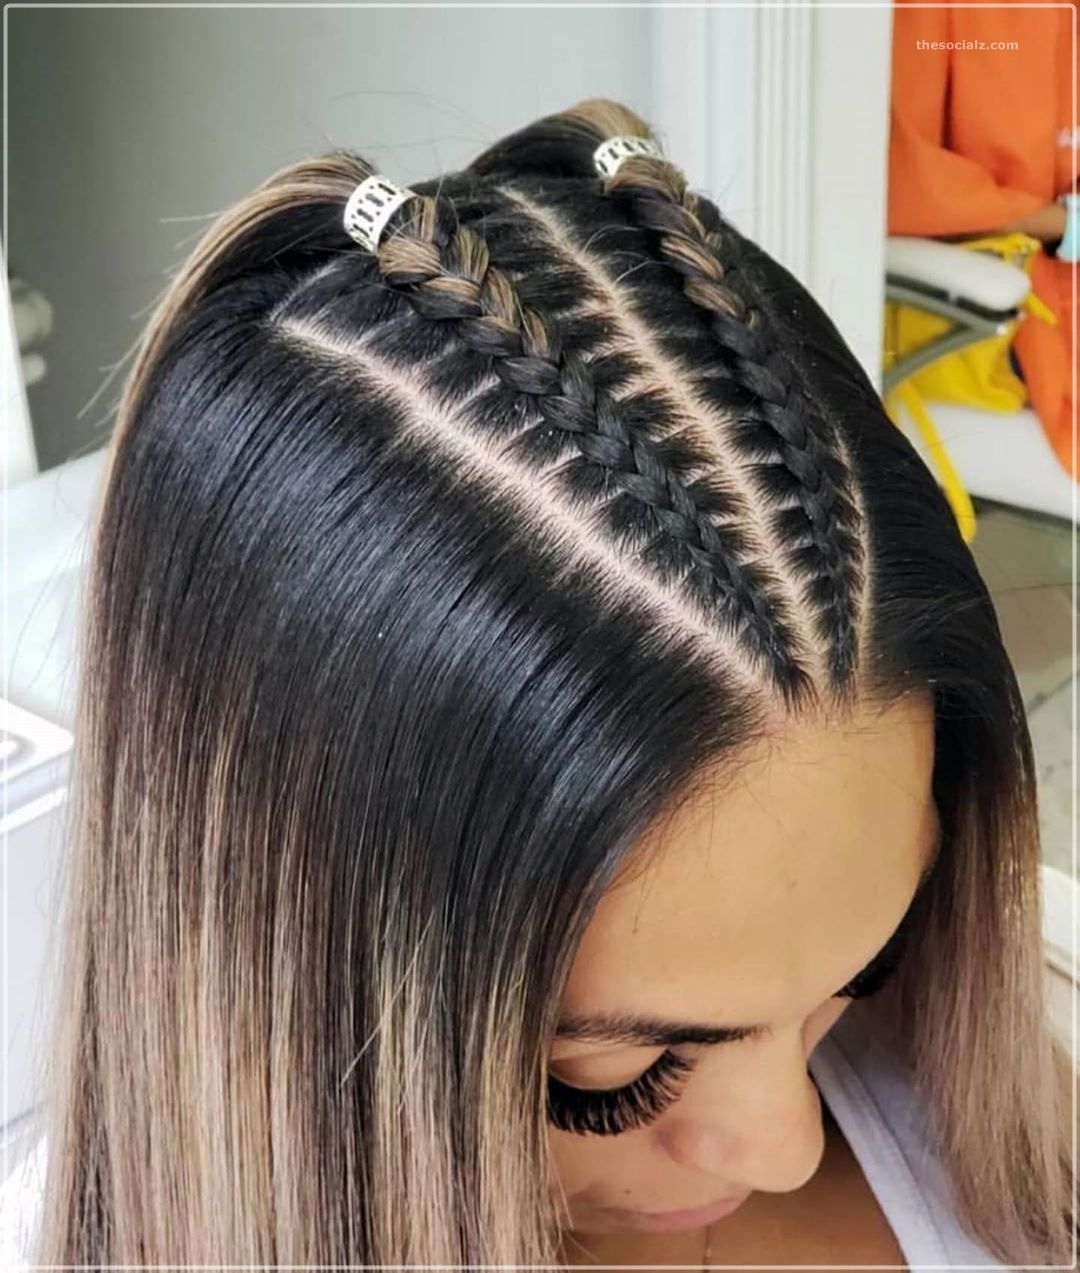 40 Best Braids Hairstyles Ideas To Inspire You Long Hair Styles Easy Hairstyles For Long Hair Braided Hairstyles